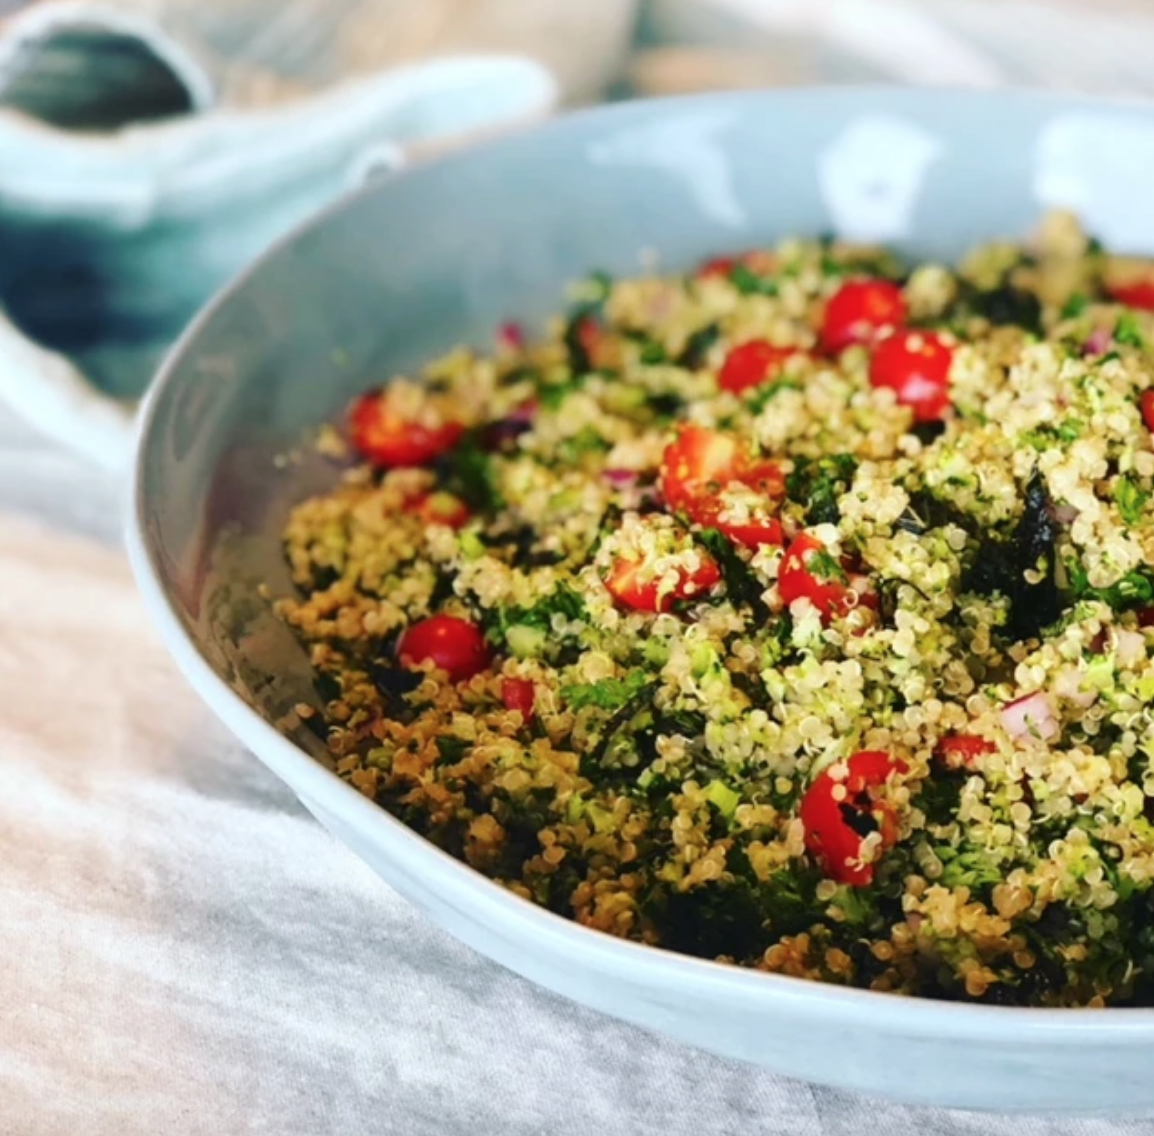 Gluten Free Broccoli and Quinoa Tabbouleh